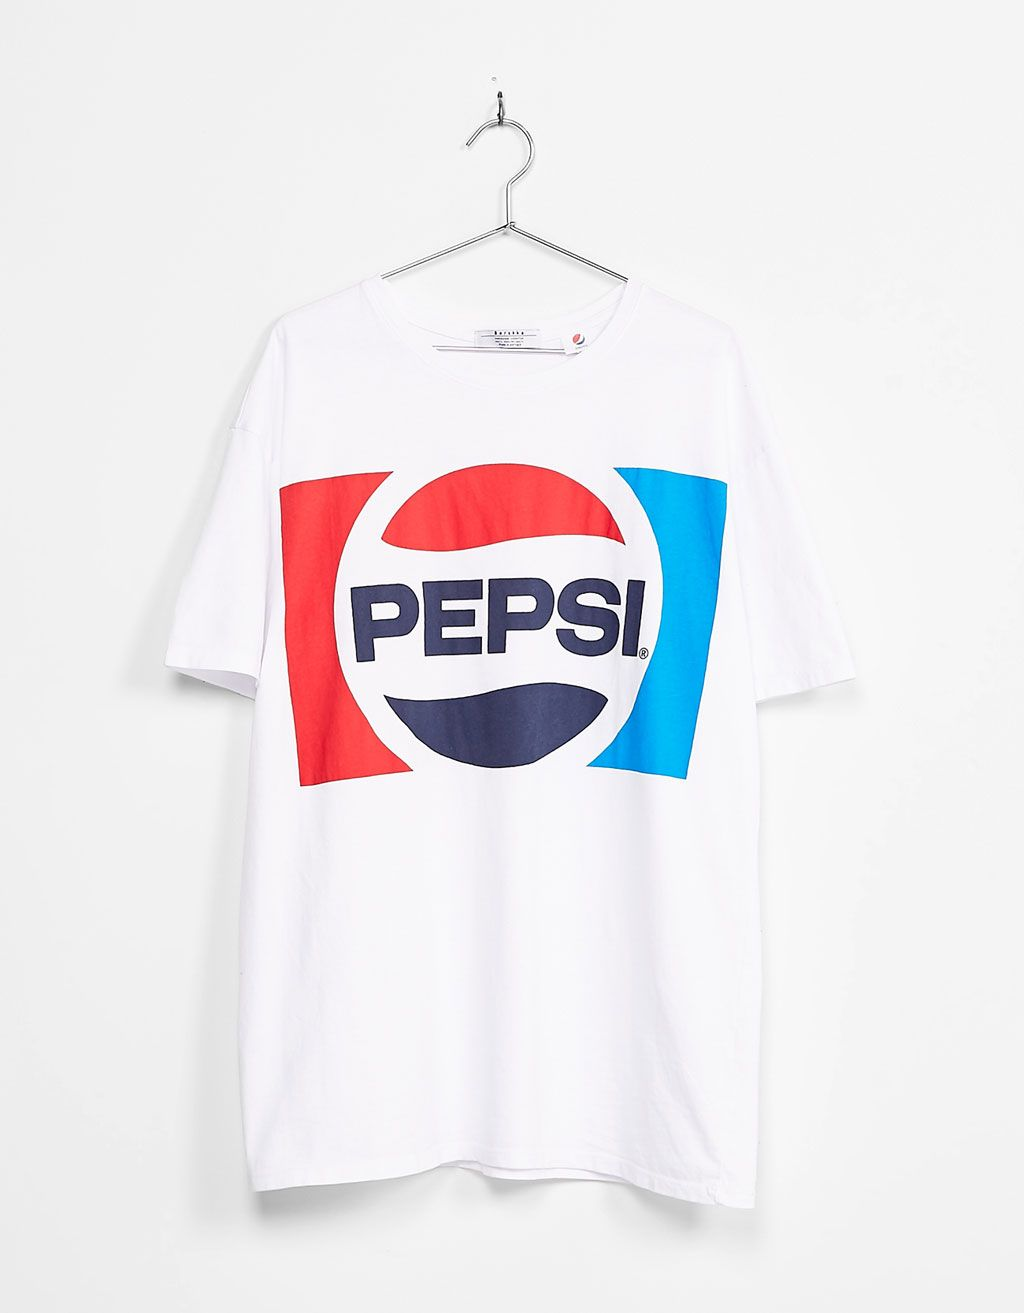 66db564837785  Pepsi  T-shirt. Discover this and many more items in Bershka with new  products every week